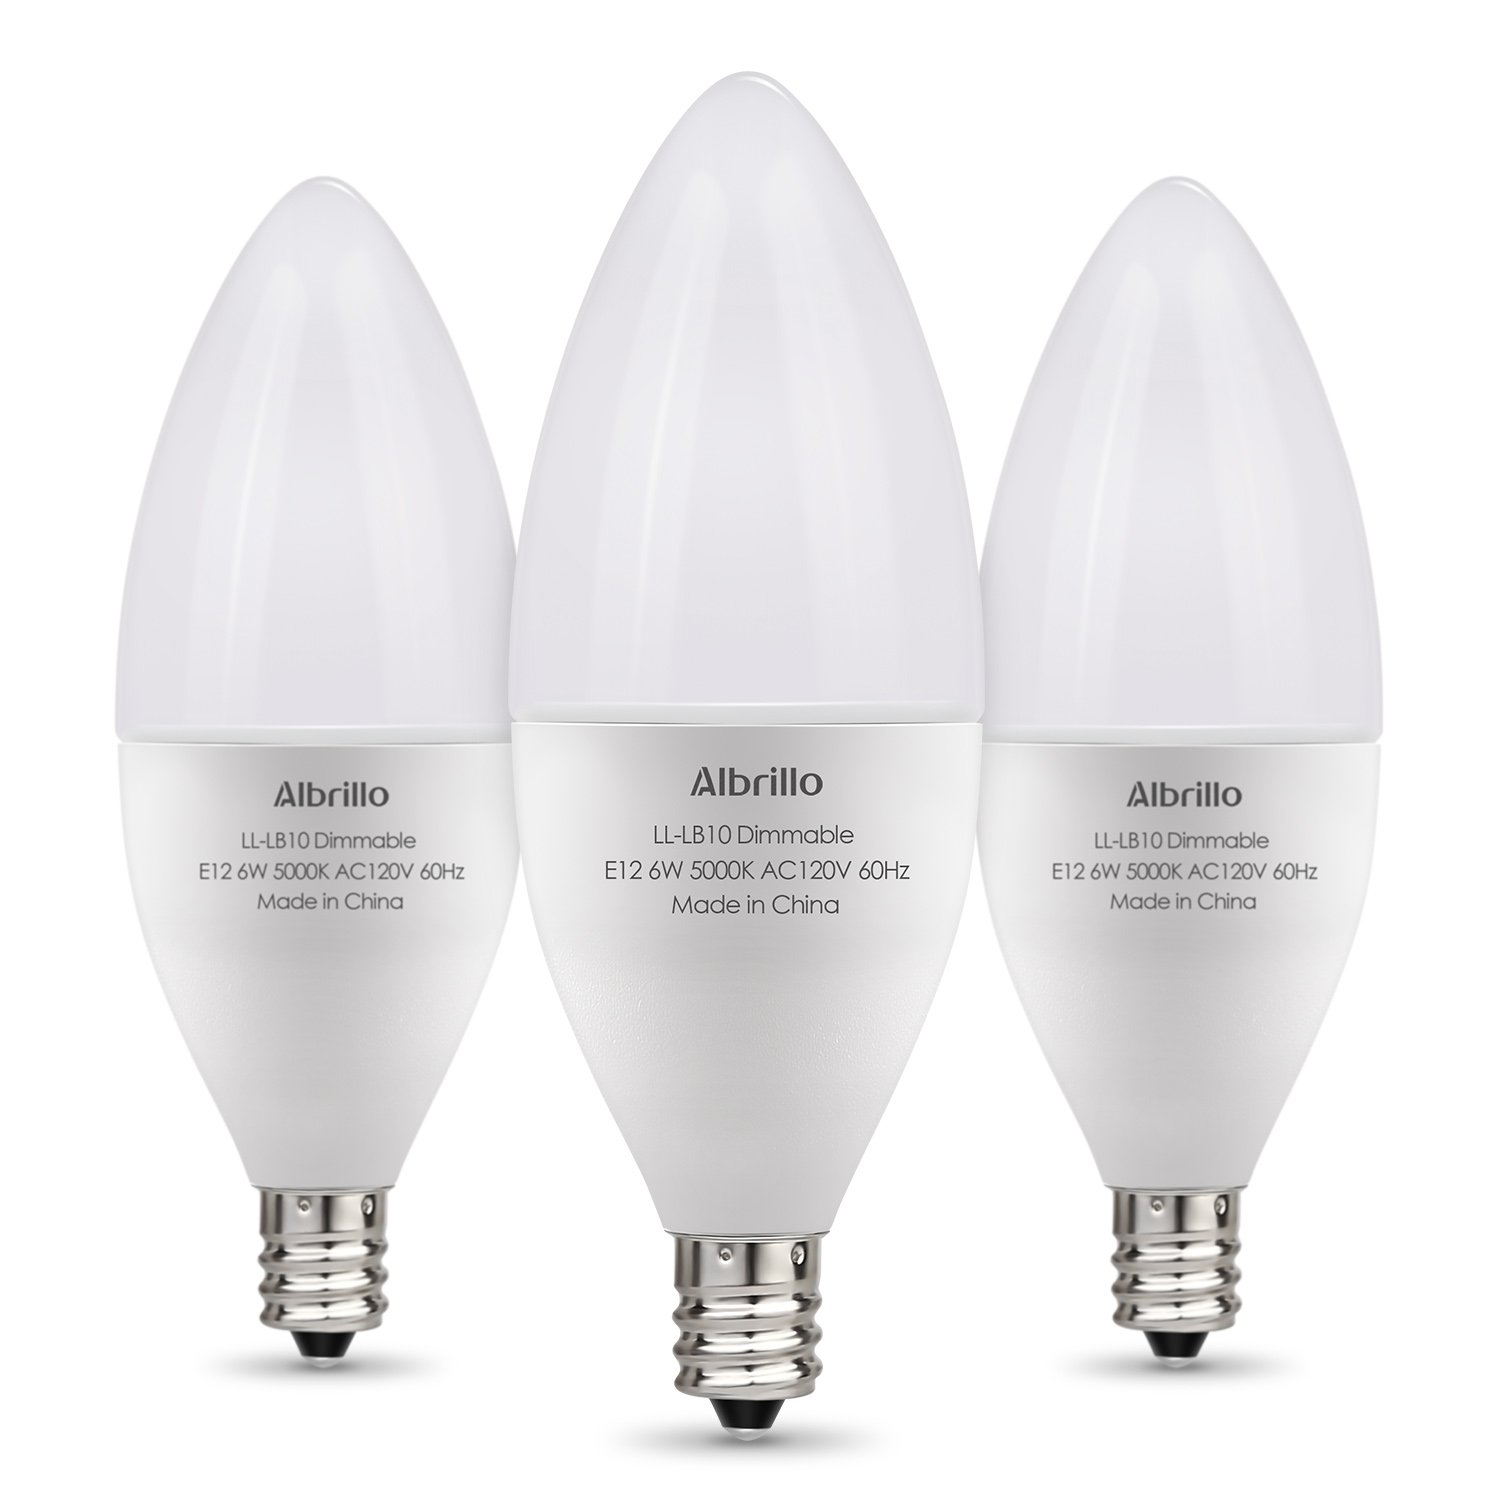 Albrillo E12 LED Bulb Dimmable Light Bulbs, 60 Watt Incandescent Equivalent, Bright White 5000K, 3 Pack